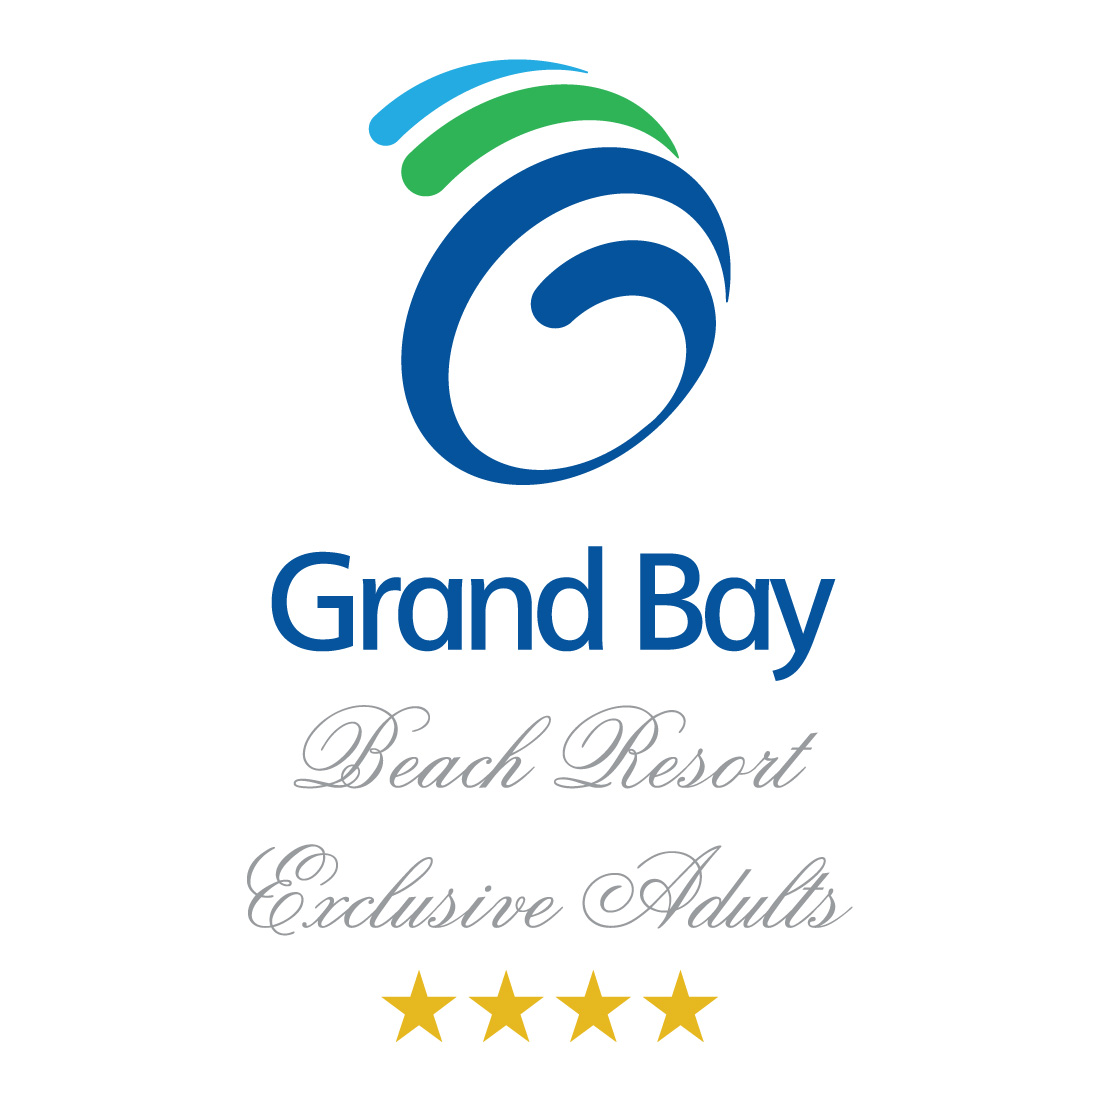 Grand Bay Beach Resort